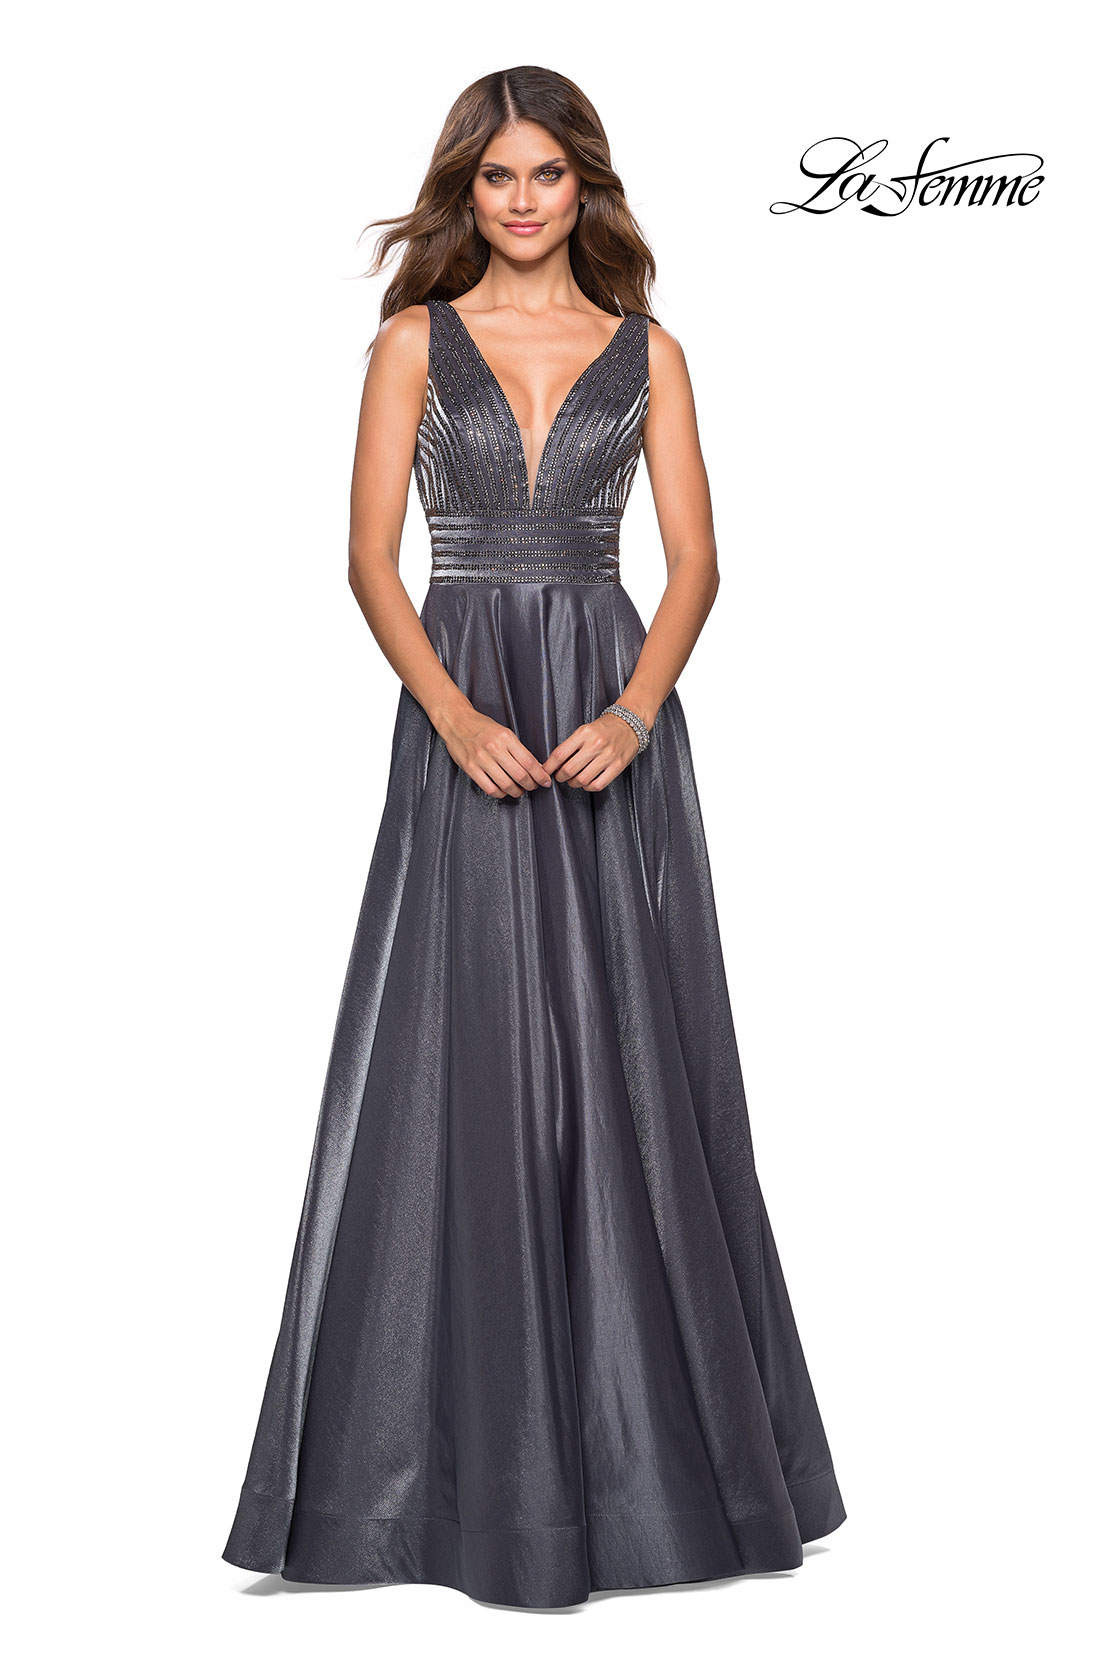 c2c0e2ca9c8 A Line V Neck Royal Blue Satin Prom Dress With Beading Pockets